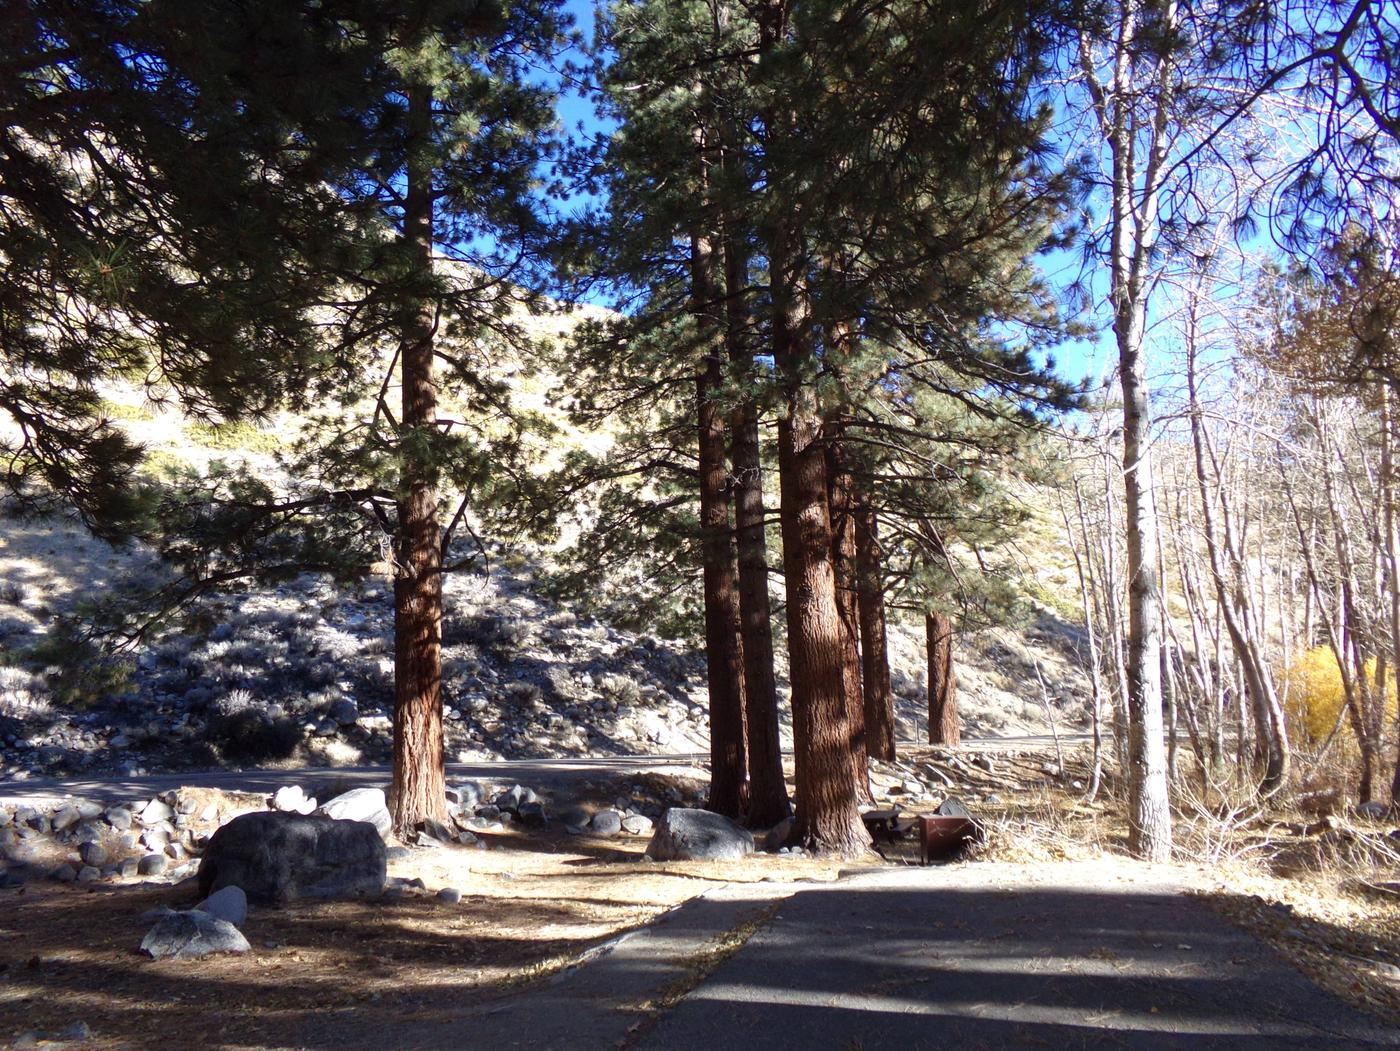 Upper Sage Flat Campground site #20 camping space among the tall pines and mountain views.